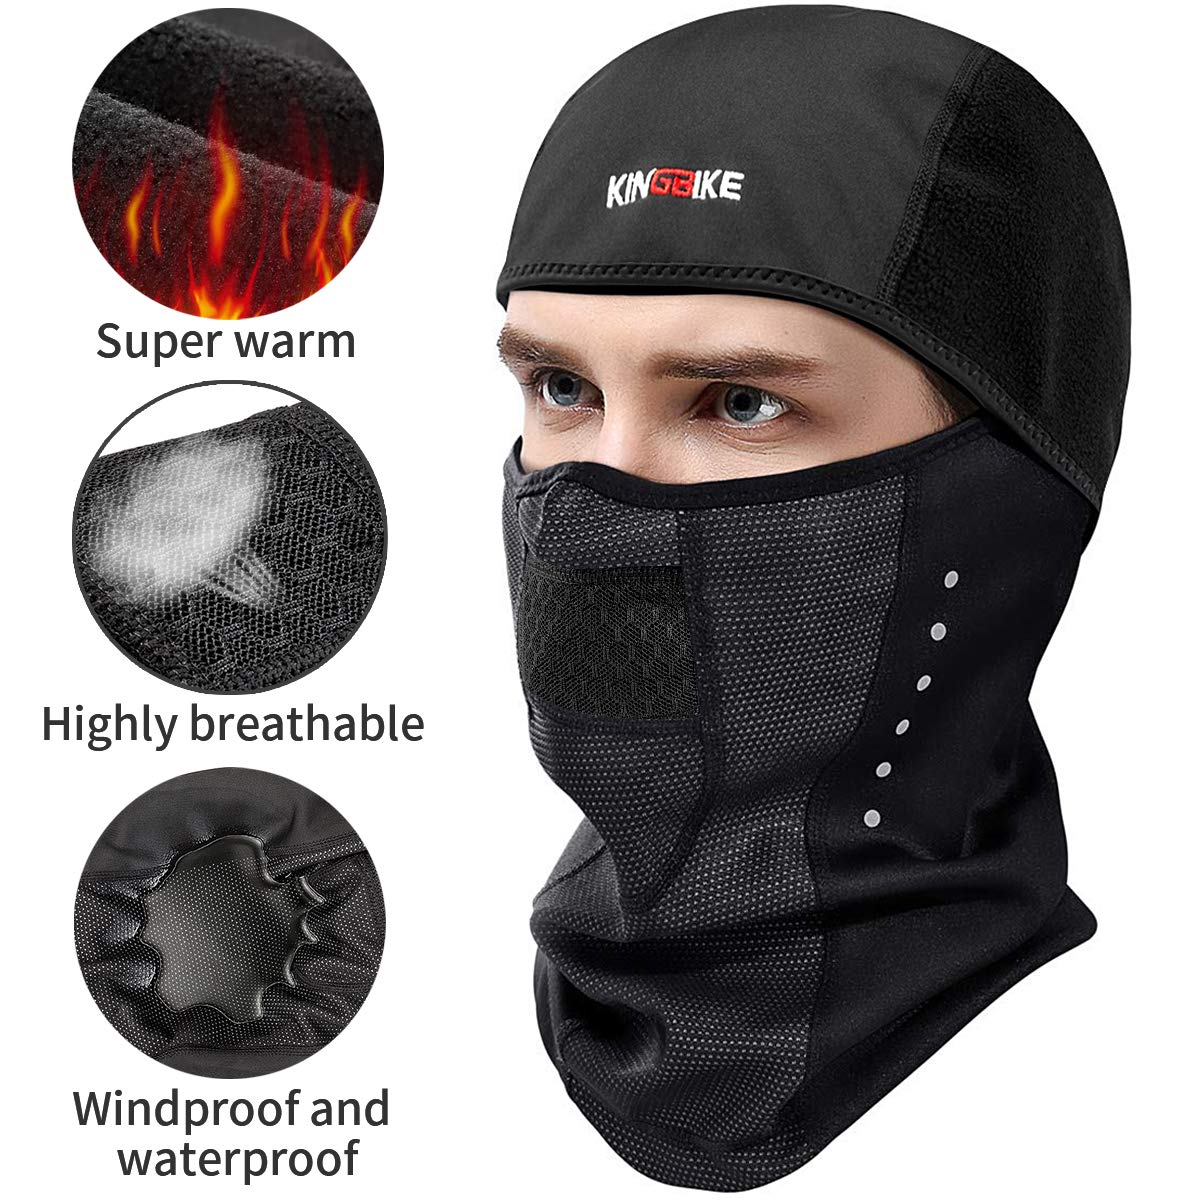 KINGBIKE Balaclava Ski Mask for Men Women